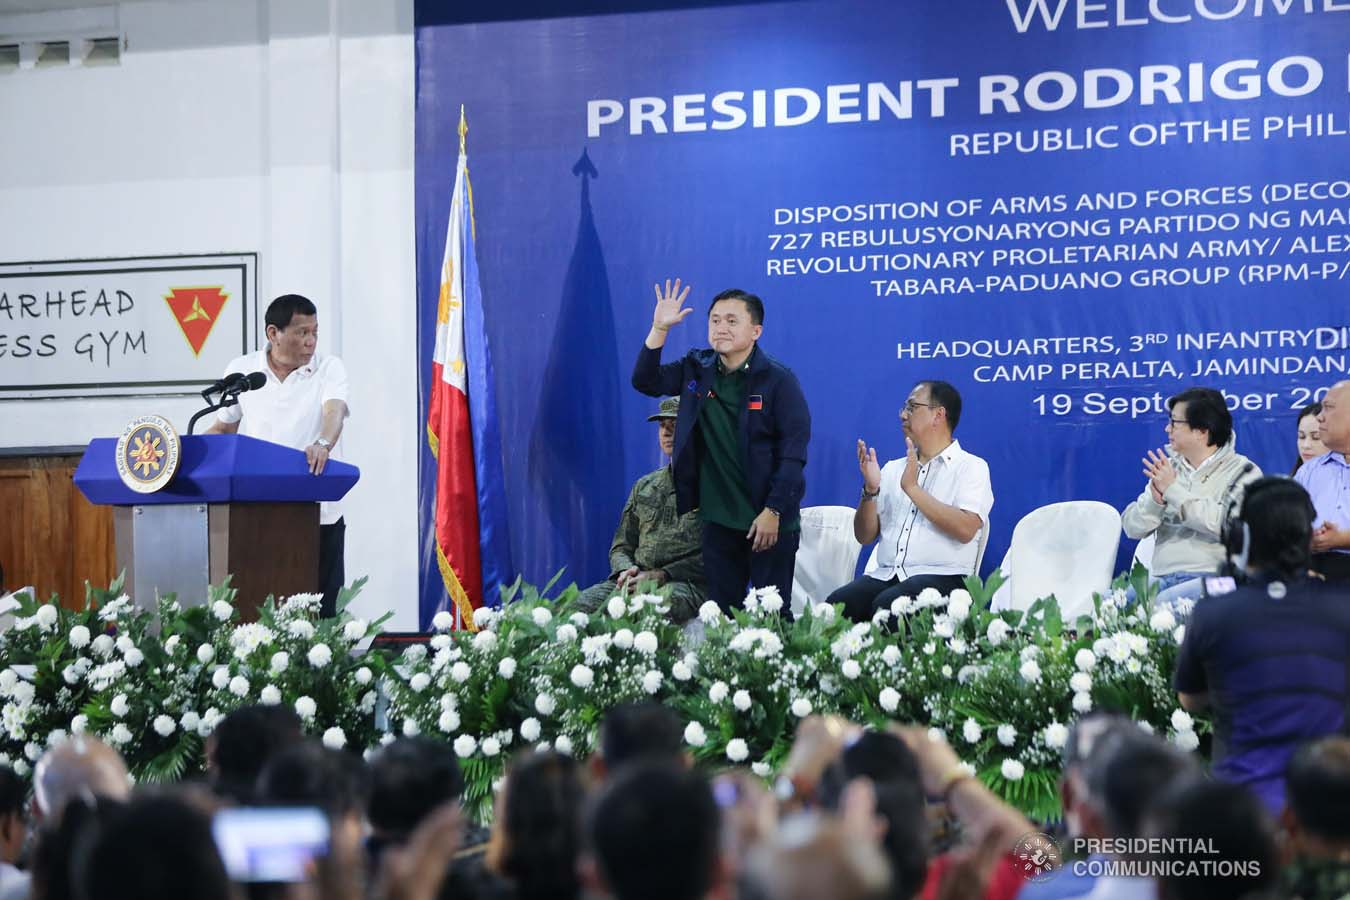 """President Rodrigo Roa Duterte recognizes the presence of Senator Christopher """"Bong"""" Go as he delivers his speech during the decommissioning of the arms and forces of the 727 Rebolusyonaryong Partido ng Manggagawa - Pilipinas/ Revolutionary Proletarian Army/ Alex Boncayao Brigade - Tabara-Paduano Group (RPM-P/RPA/ABB-TPG) at the Camp General Macario B. Peralta, Jr. in Jamindan, Capiz on September 19, 2019. ALFRED FRIAS/PRESIDENTIAL PHOTO"""